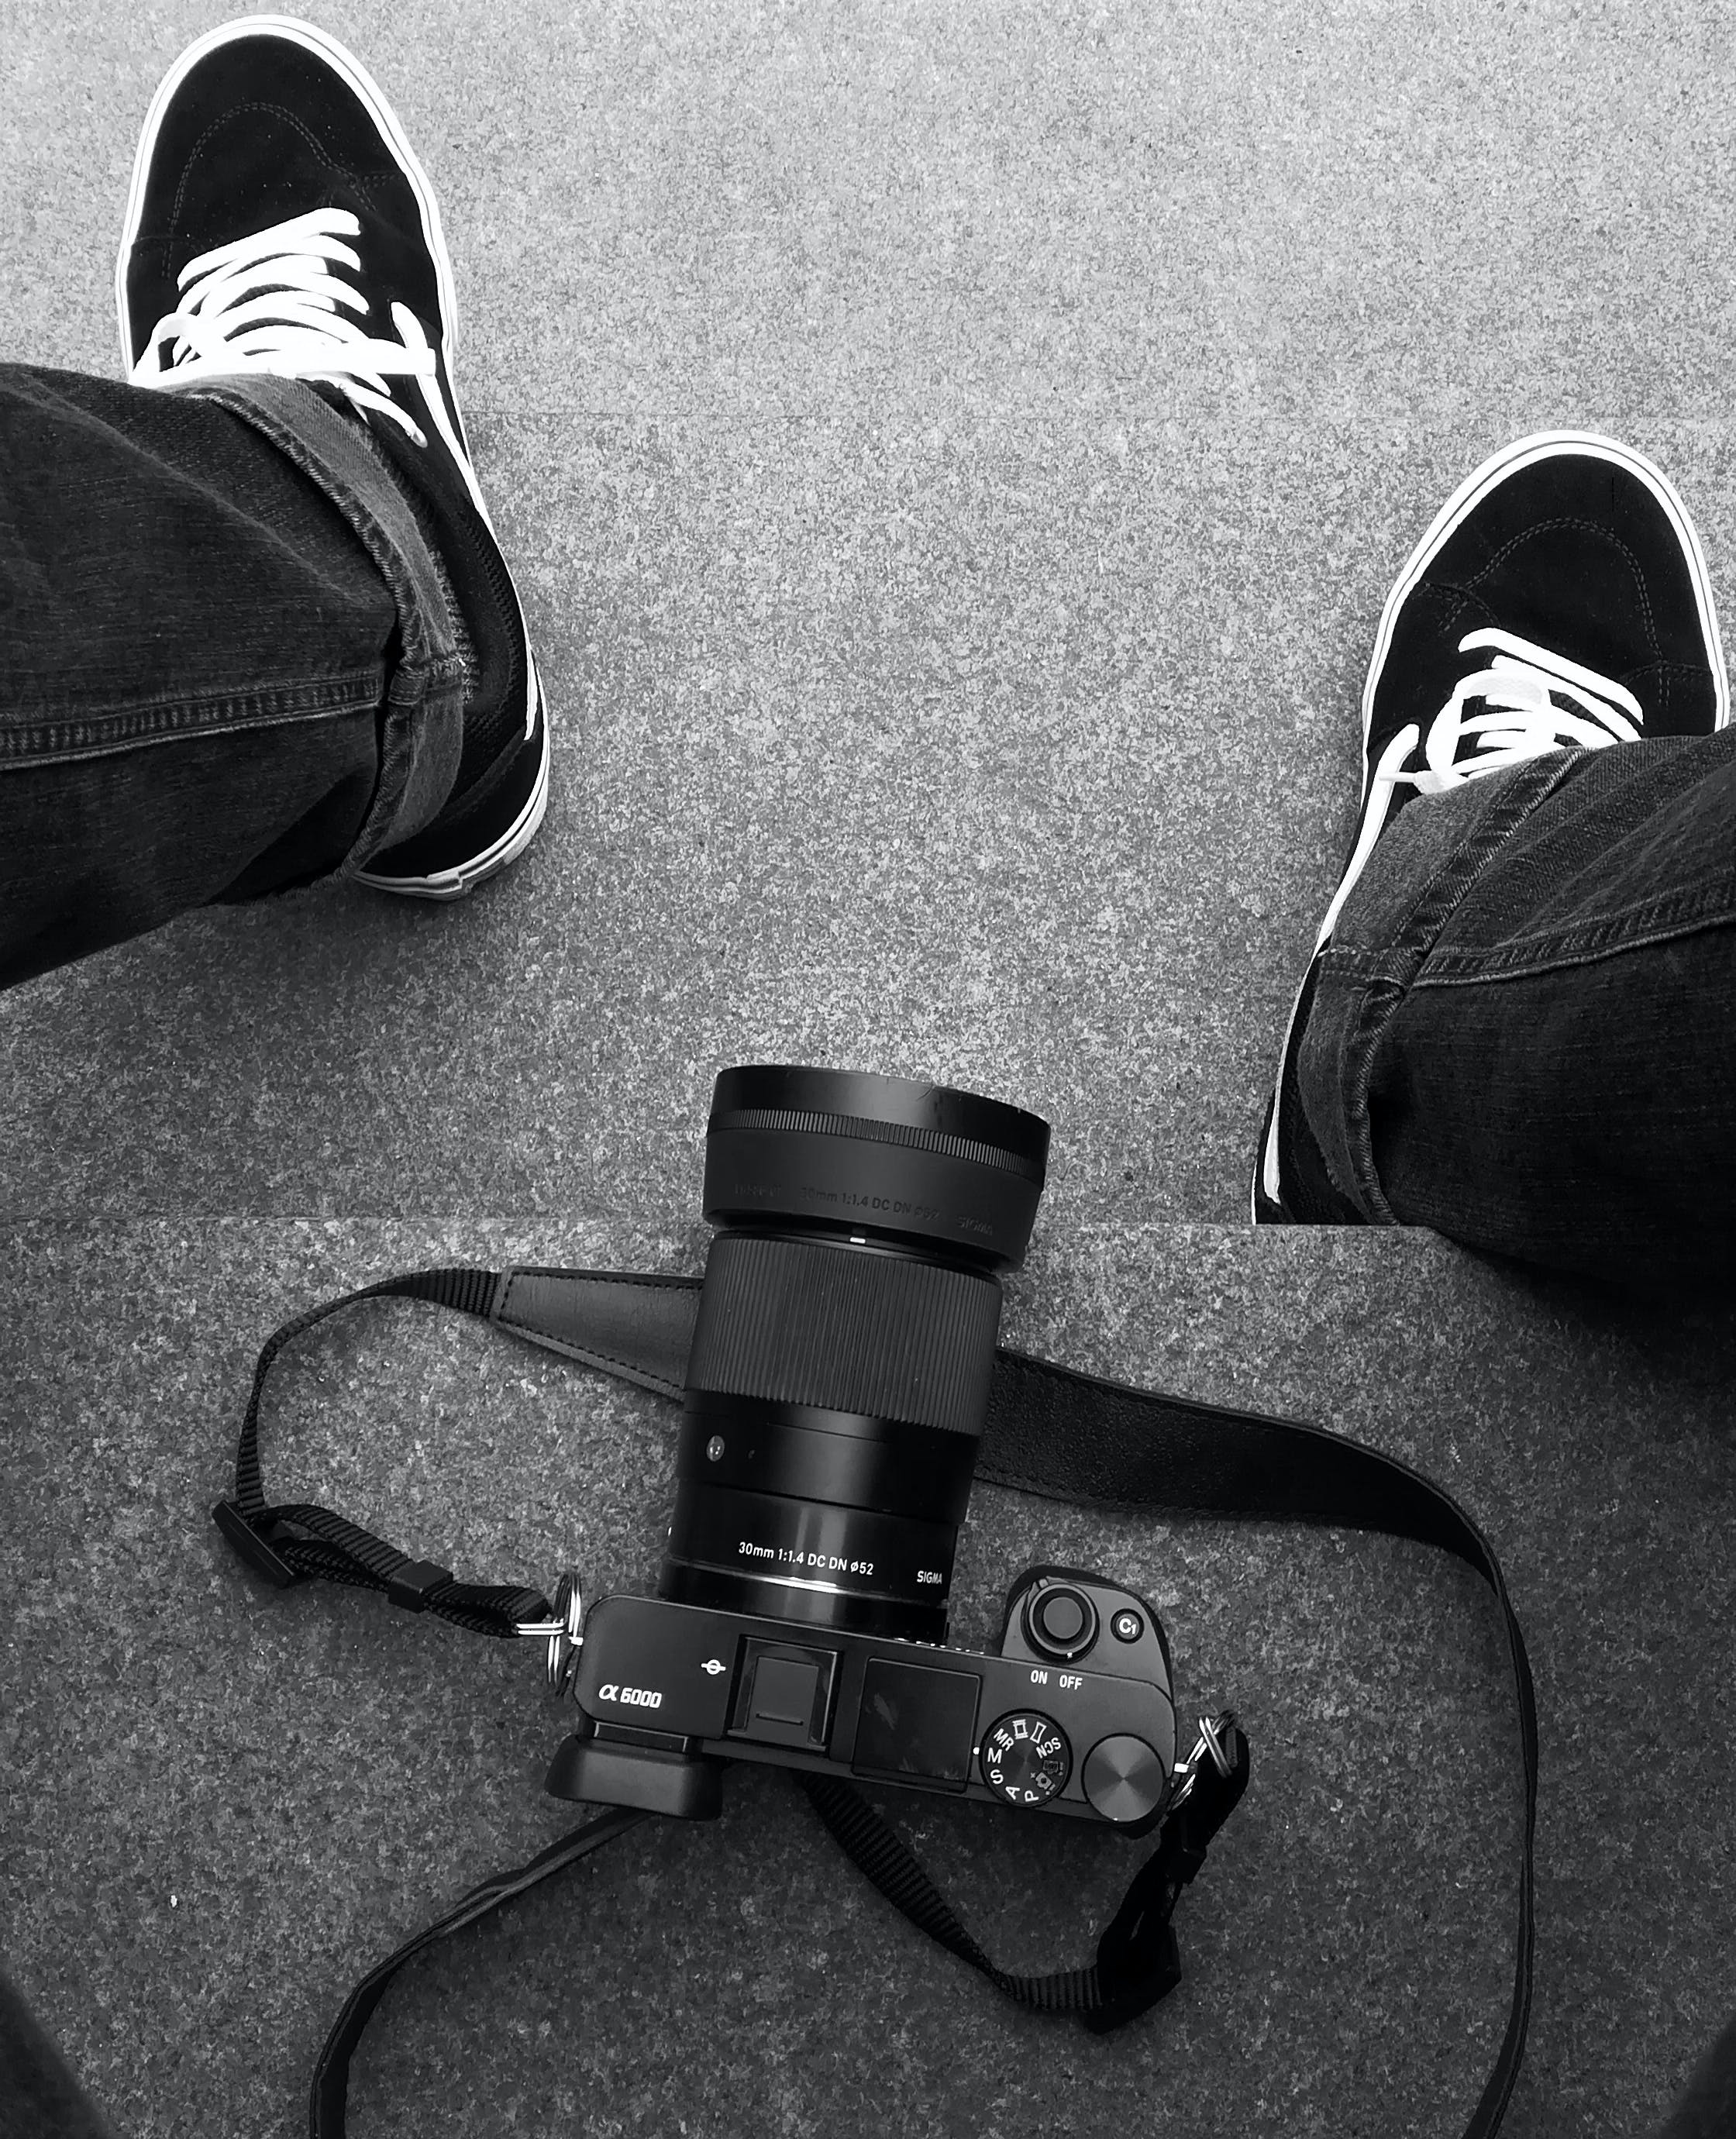 Free stock photo of stairs, camera, sitting, shoes